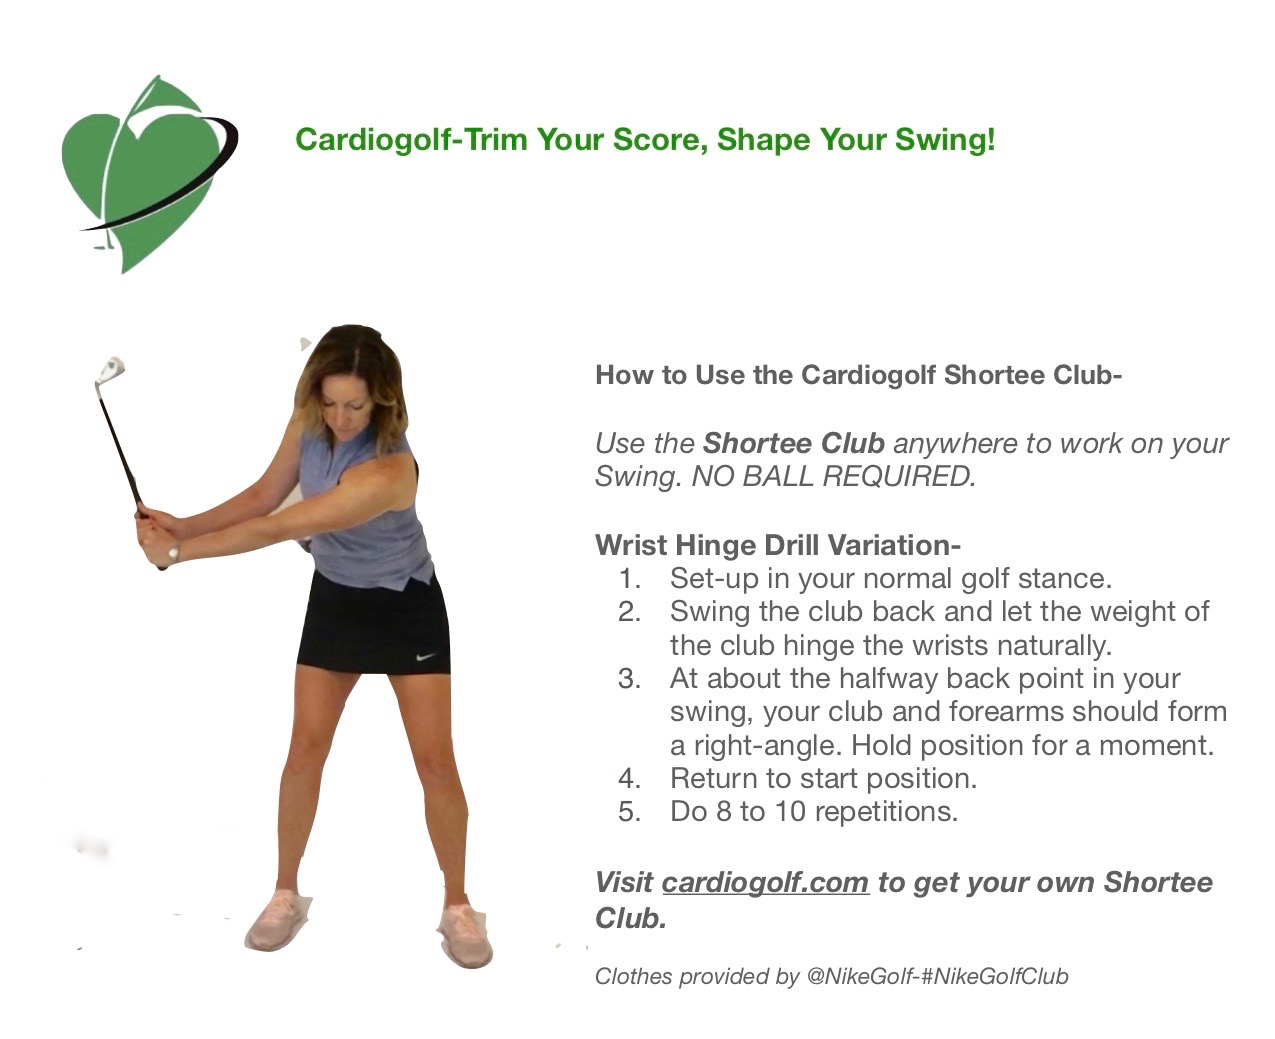 Wrist Hinge Archives - KPJgolf com Golf and Fitness by Karen